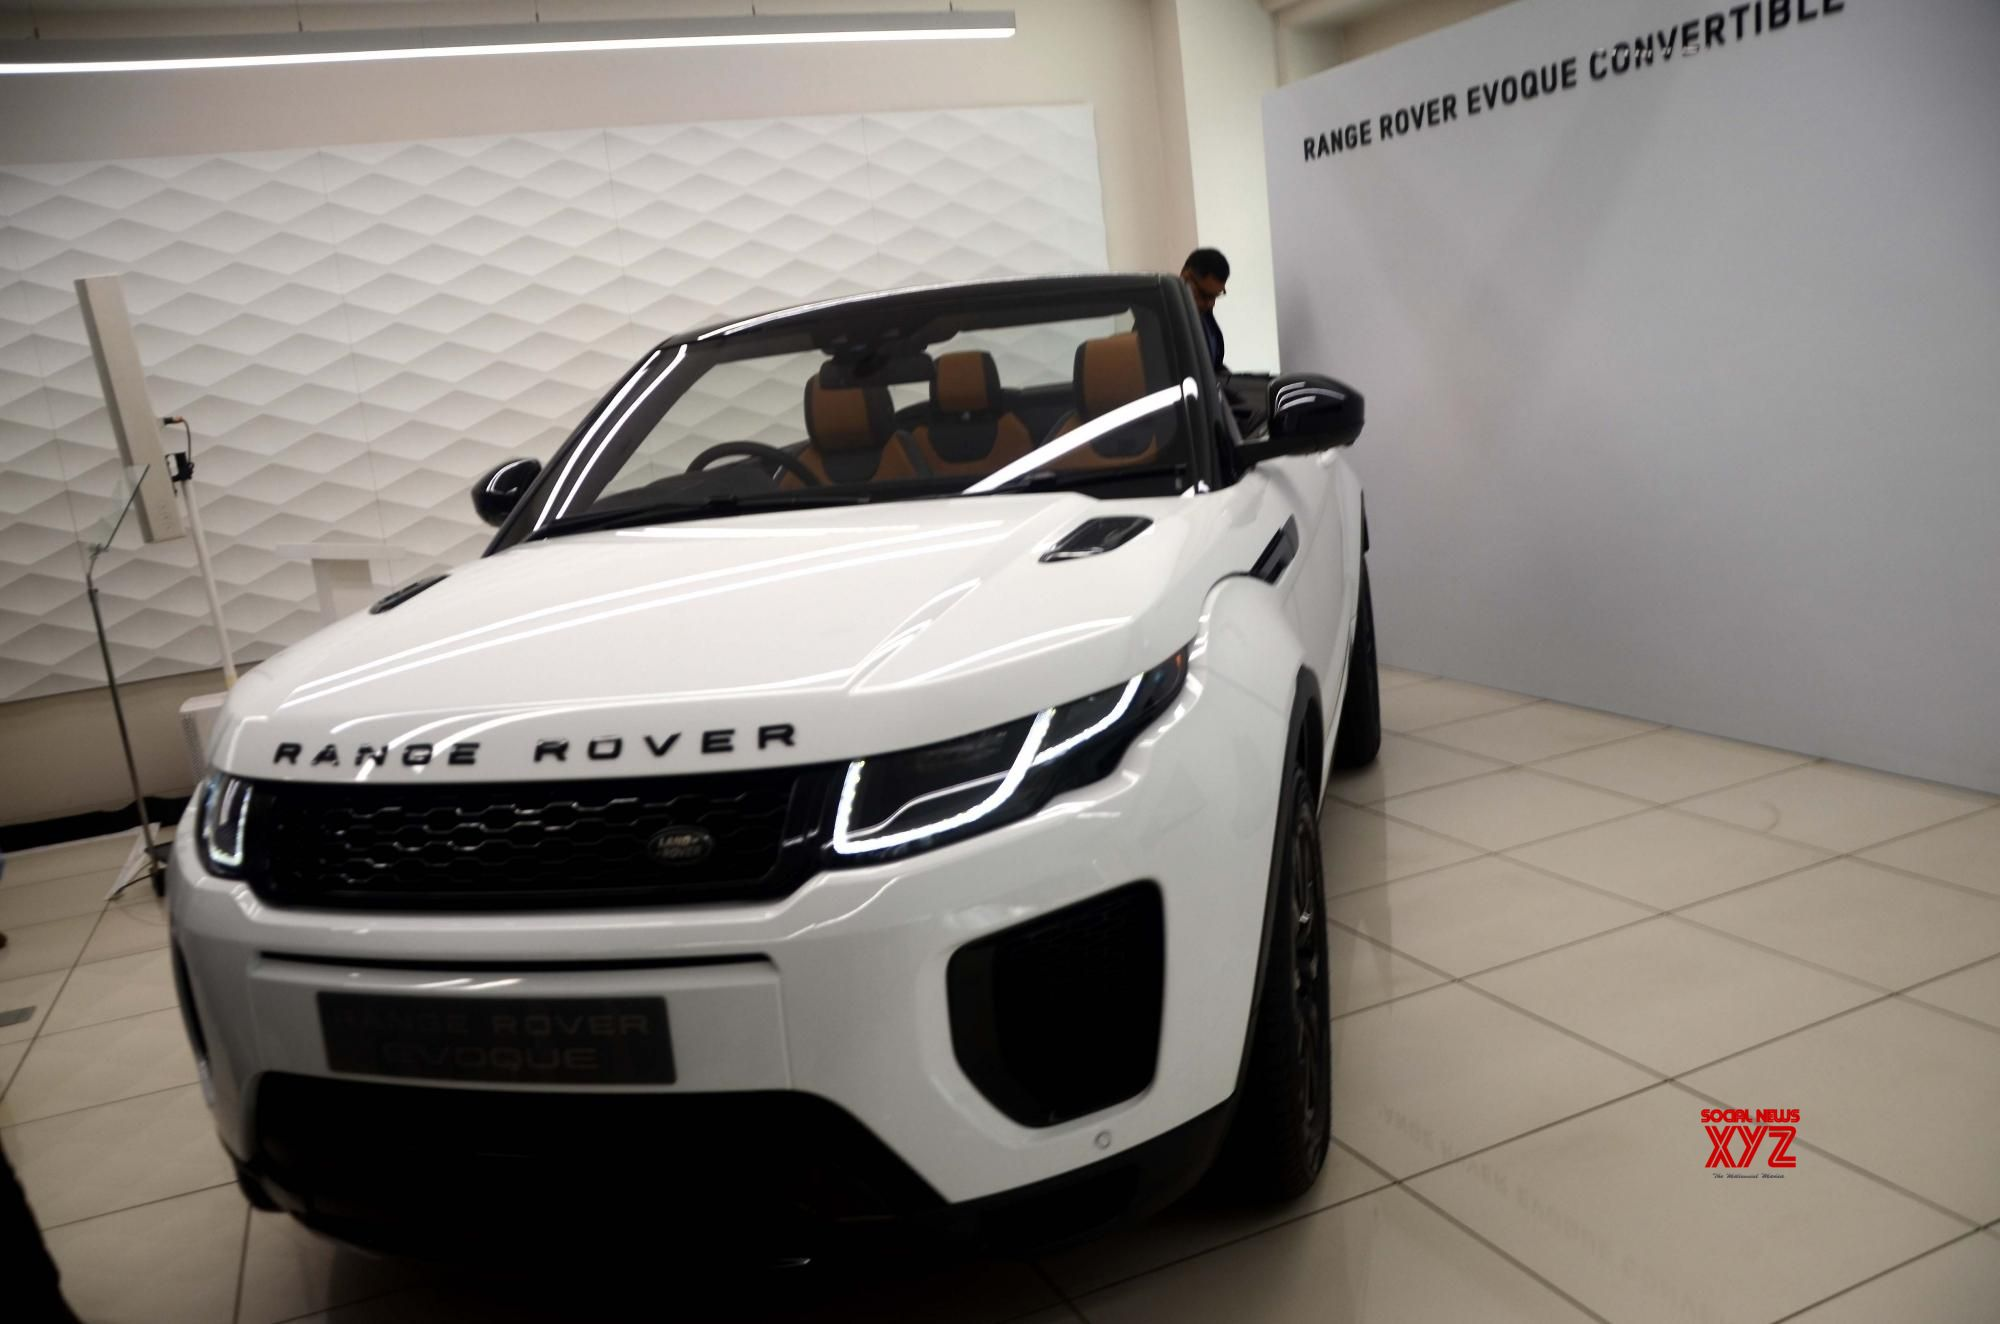 Jlr India Launches Range Rover Evoque Convertible Social News Xyz